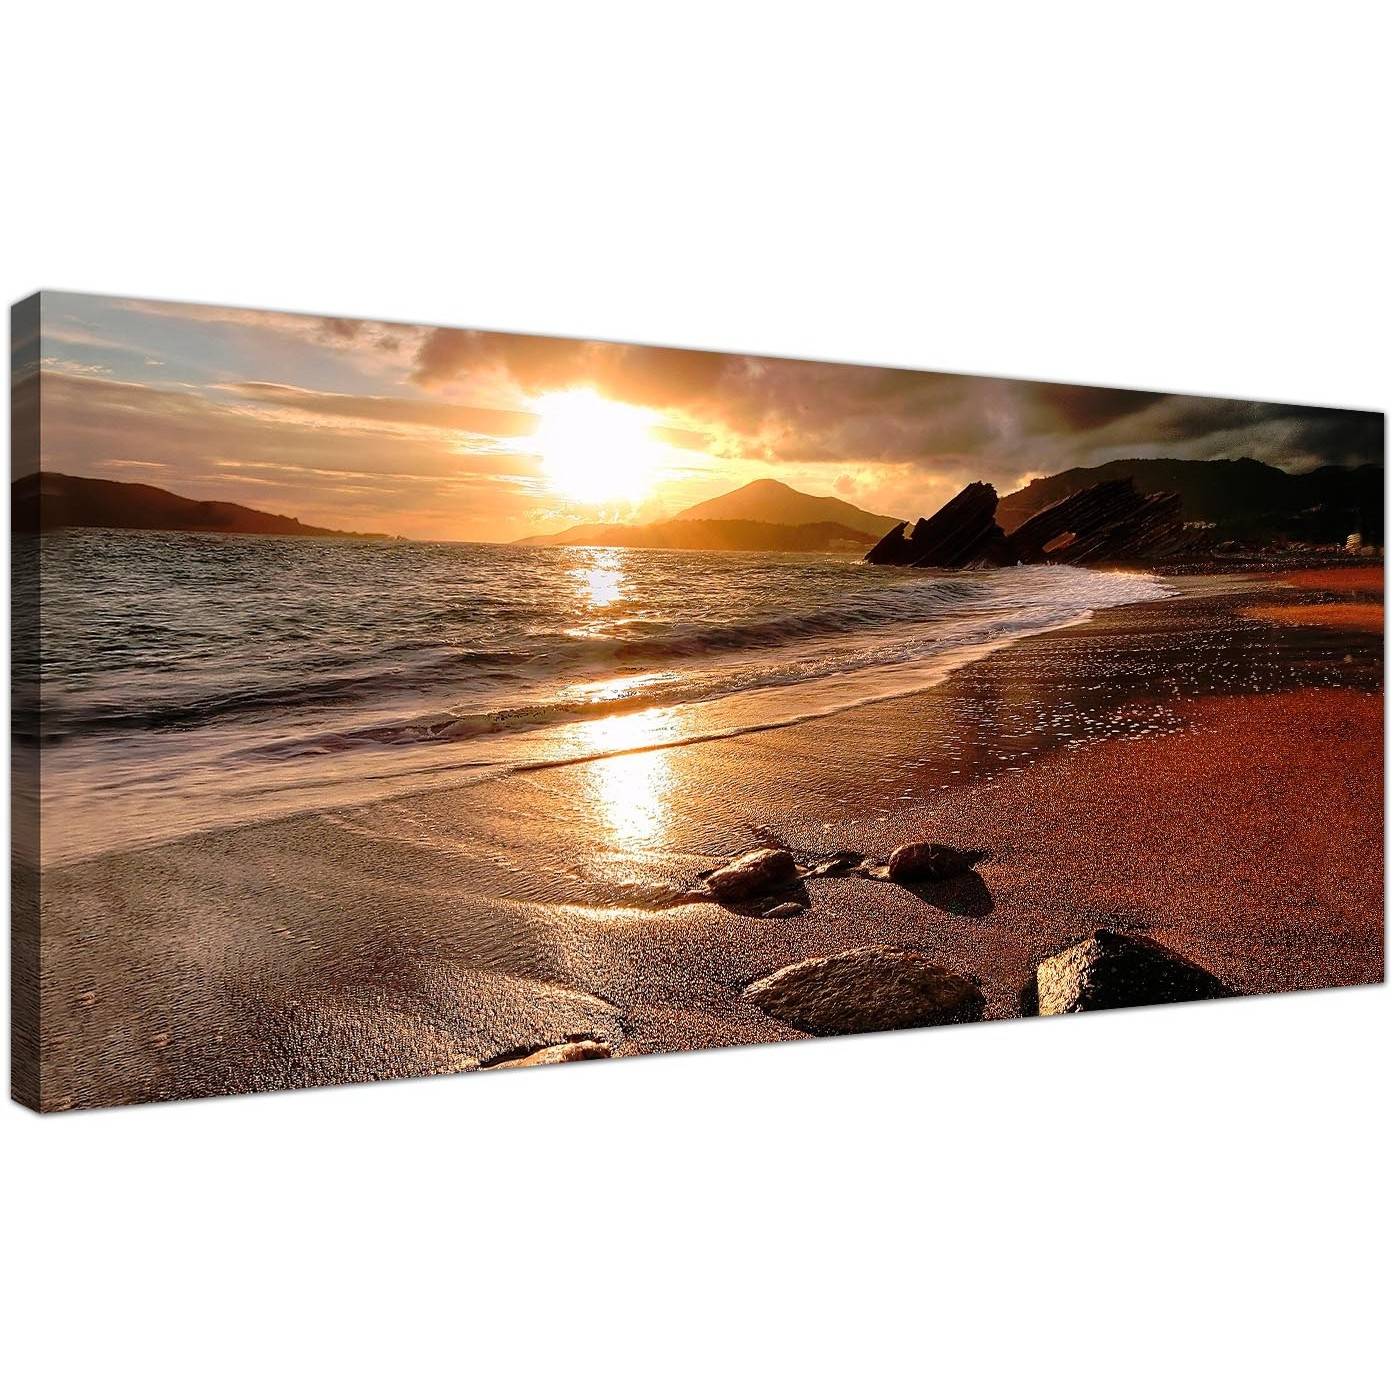 Wide Canvas Prints Of A Beach Sunset For Your Living Room Regarding Current Landscape Canvas Wall Art (View 15 of 15)